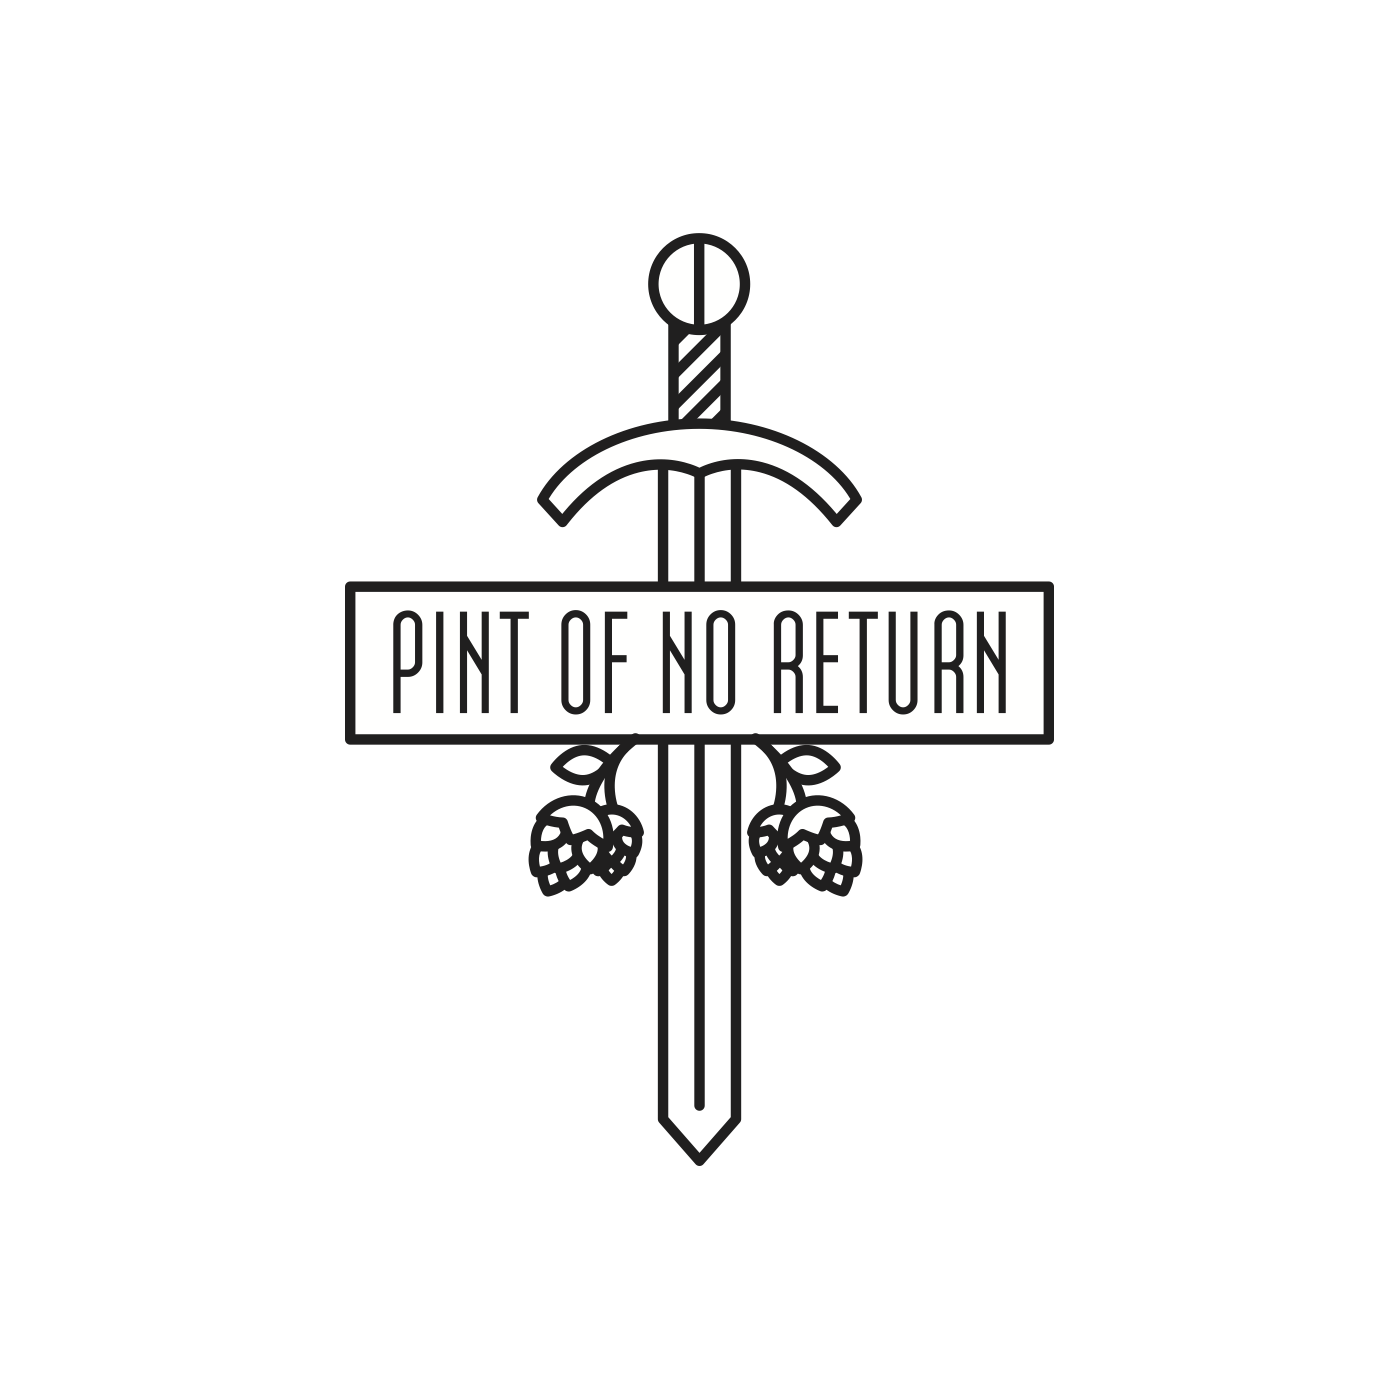 Pint of No Return